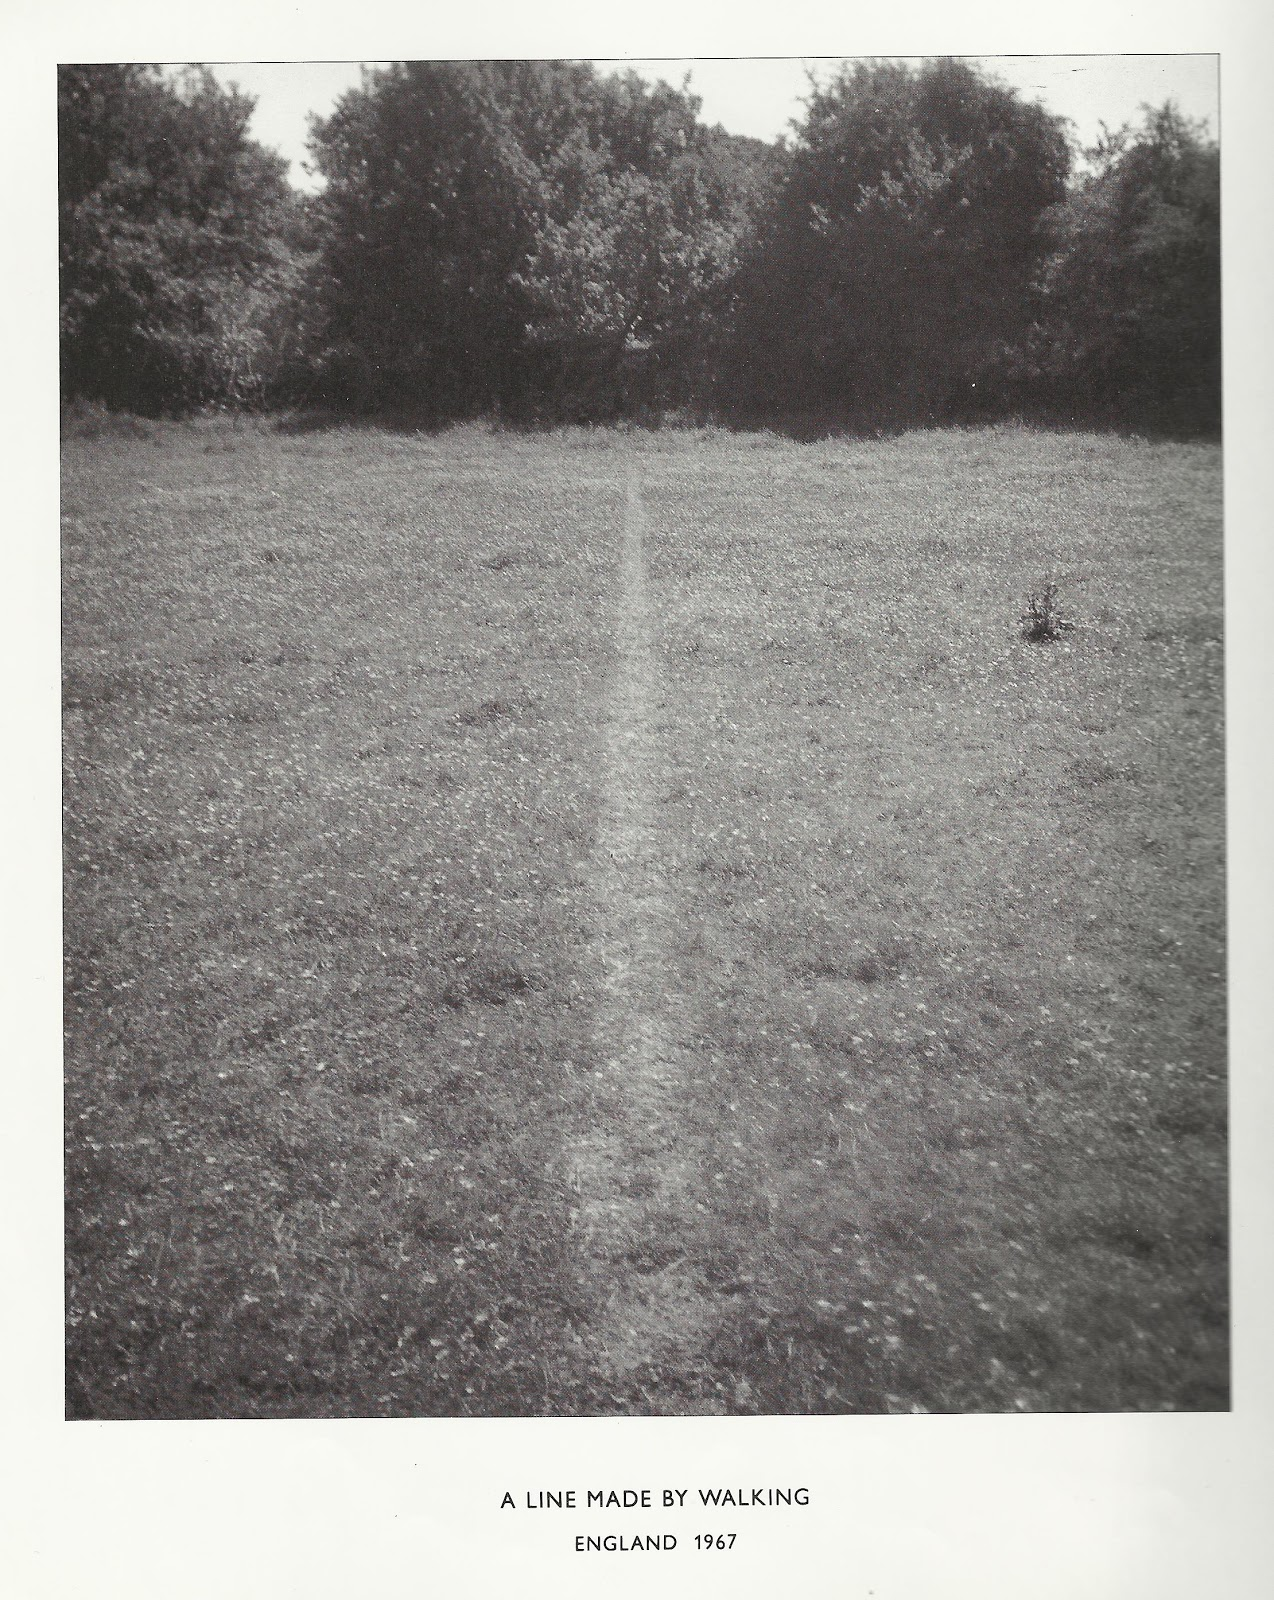 ciaran jones photography the art of walking richard long and hamish fulton works along the same lines in fact the essay written inside the catalogue an object cannot compete an experience a 14 day walking